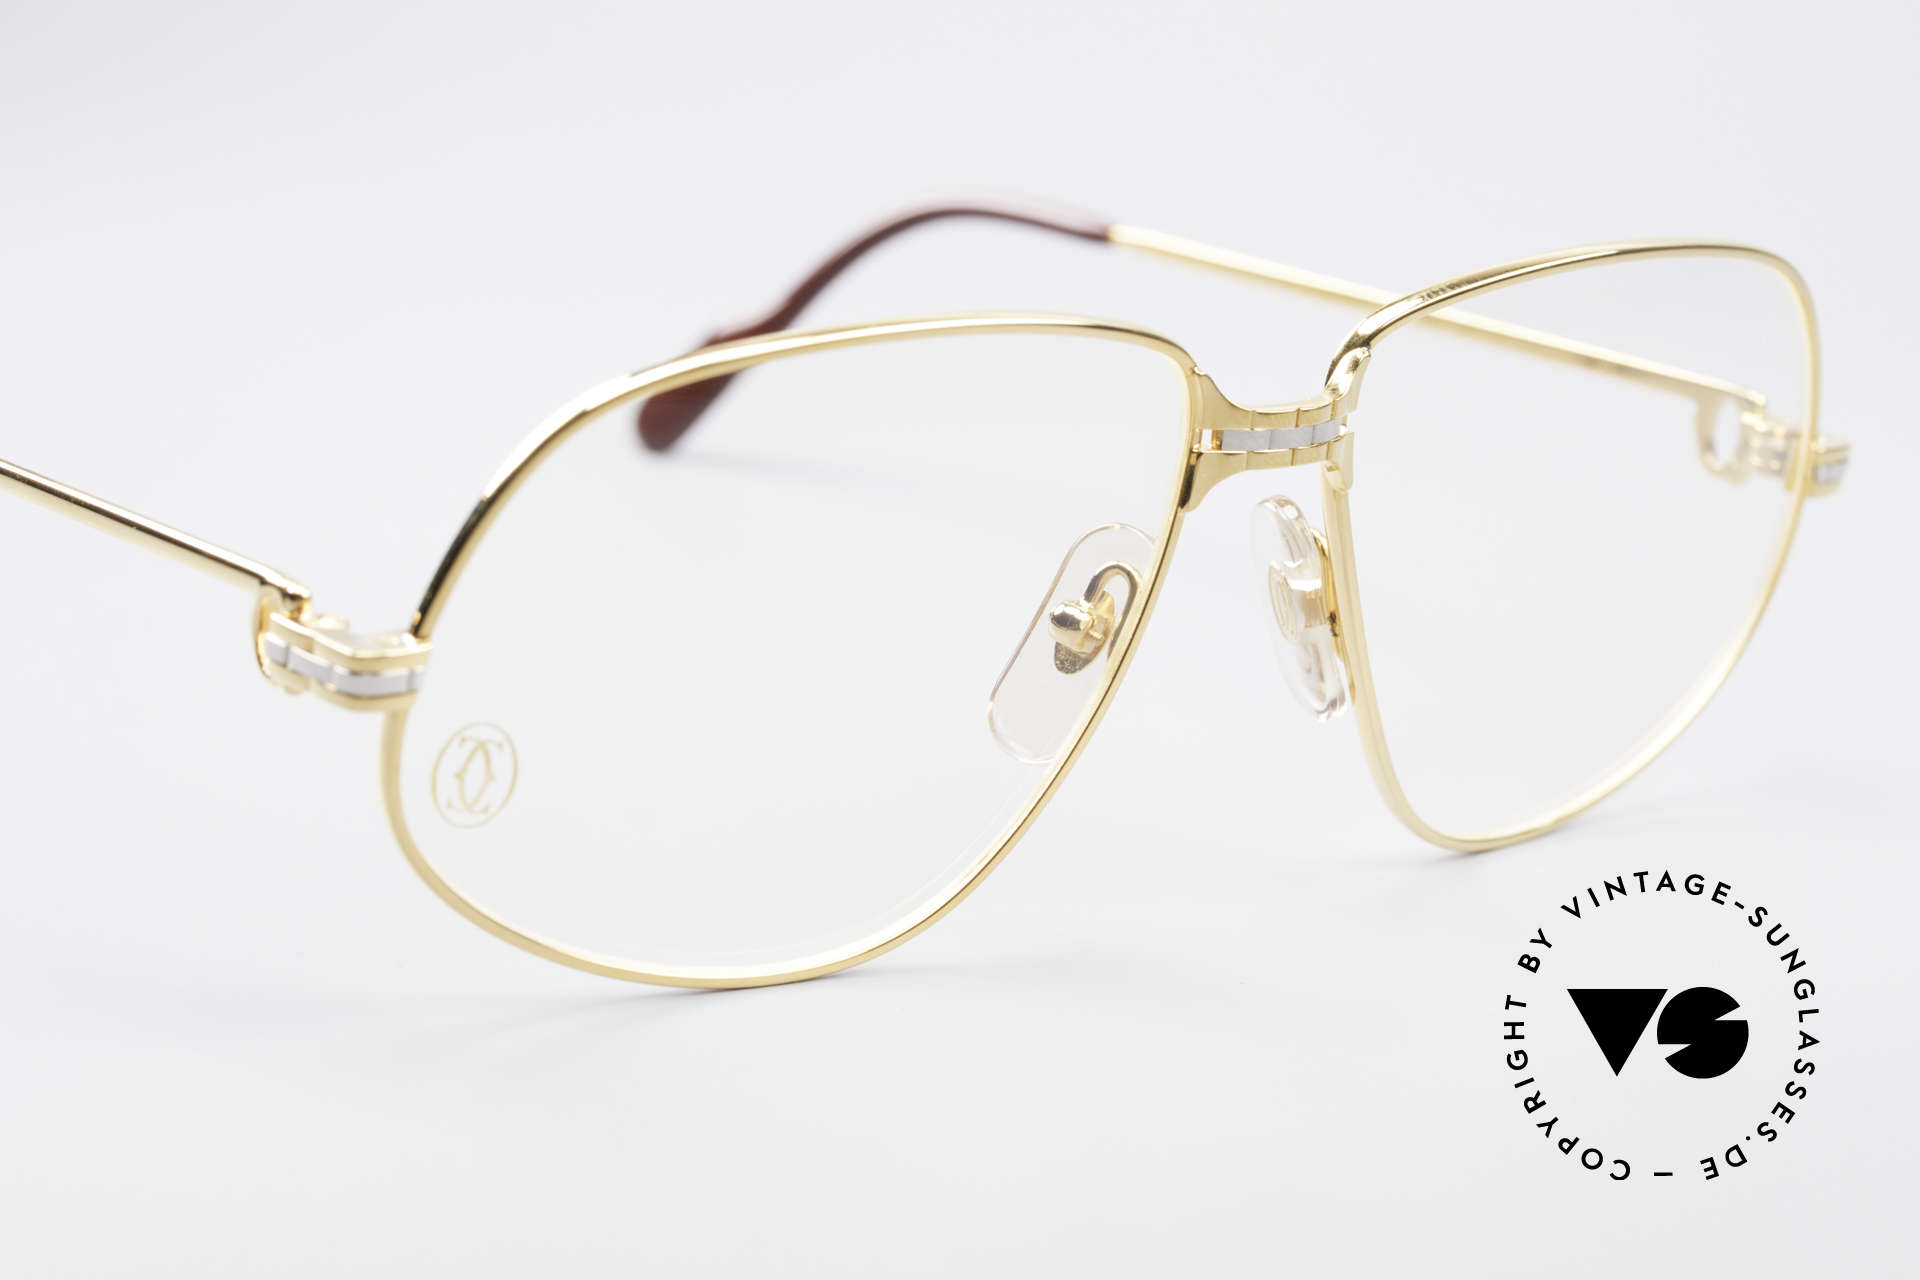 Cartier Panthere G.M. - L 1980's Luxury Eyeglass-Frame, 22ct gold-plated finish (like all vintage Cartier originals), Made for Men